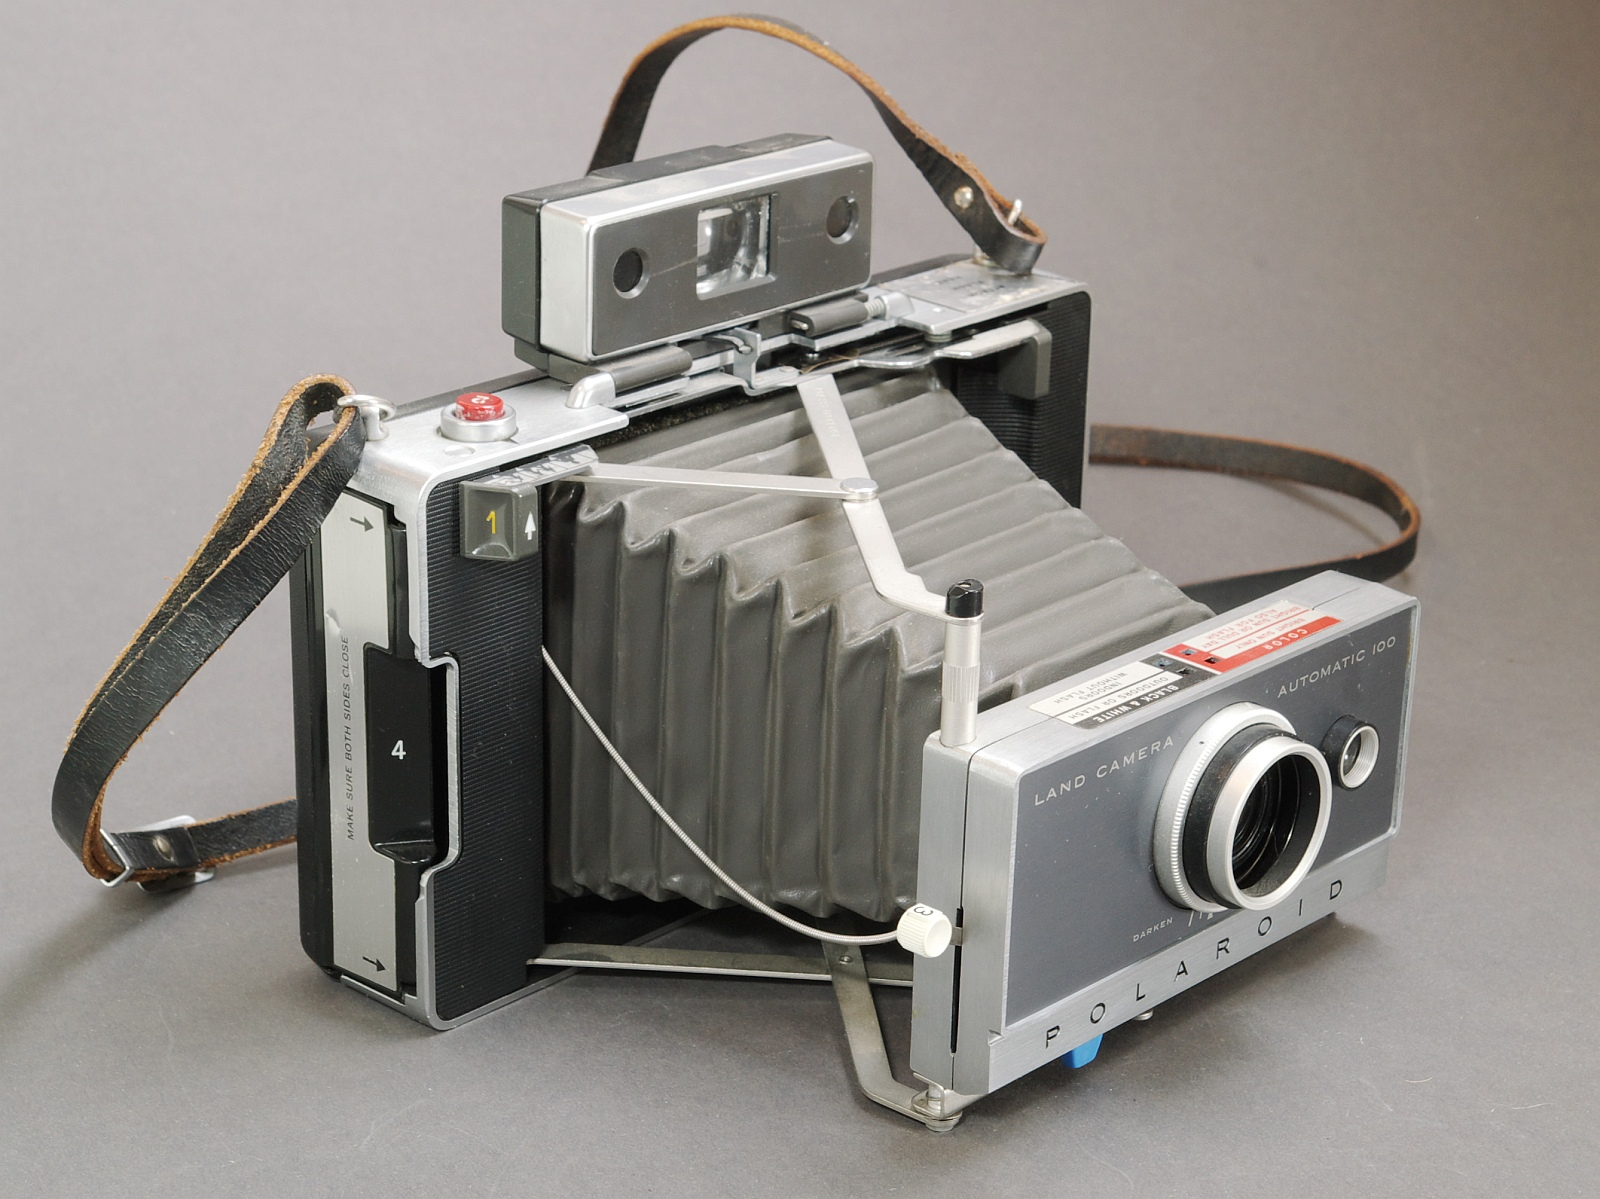 File:Polaroid Land Camera 100 IMGP1932 WP.jpg - Wikimedia Commons